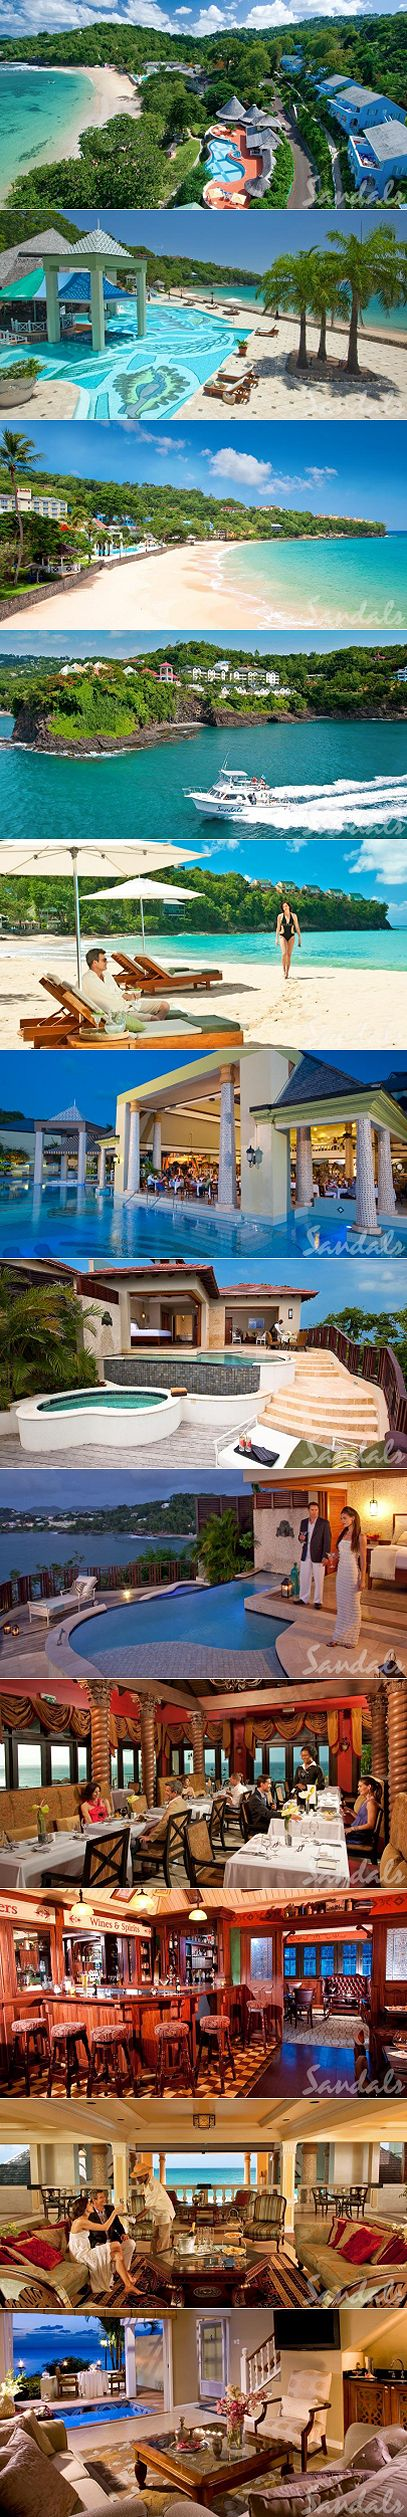 Sandals all inclusive honeymoon resort in St. Lucia...beyond excited..looked endlessly for the right spot..glad we looked into other islands..heard so much about it :) CHRISTMAS 2013 w/ my family and hubby